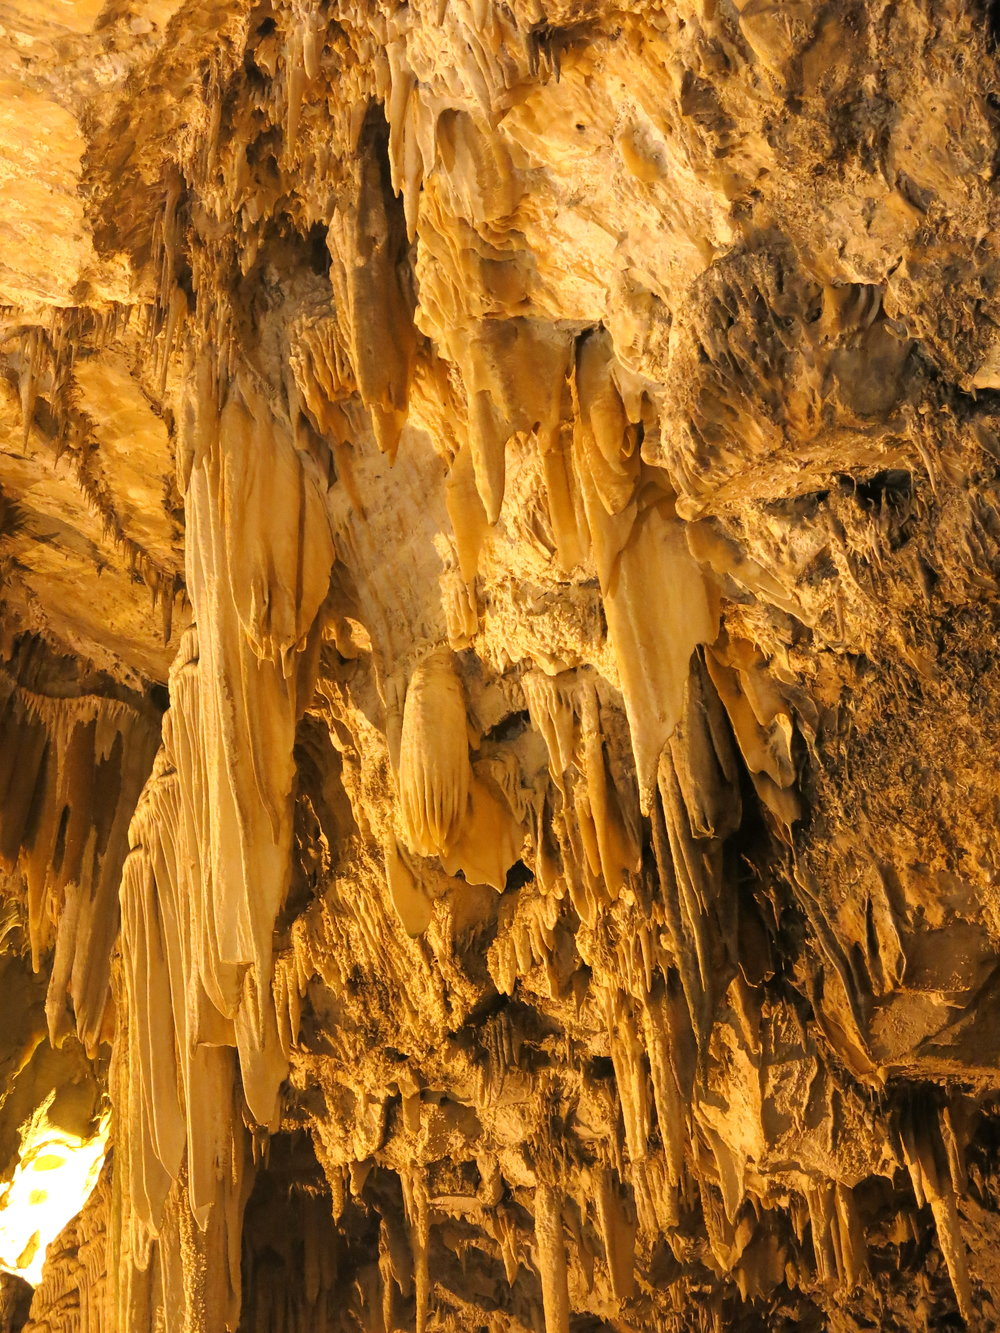 Stalactite formations deep inside the caves of Antiparos